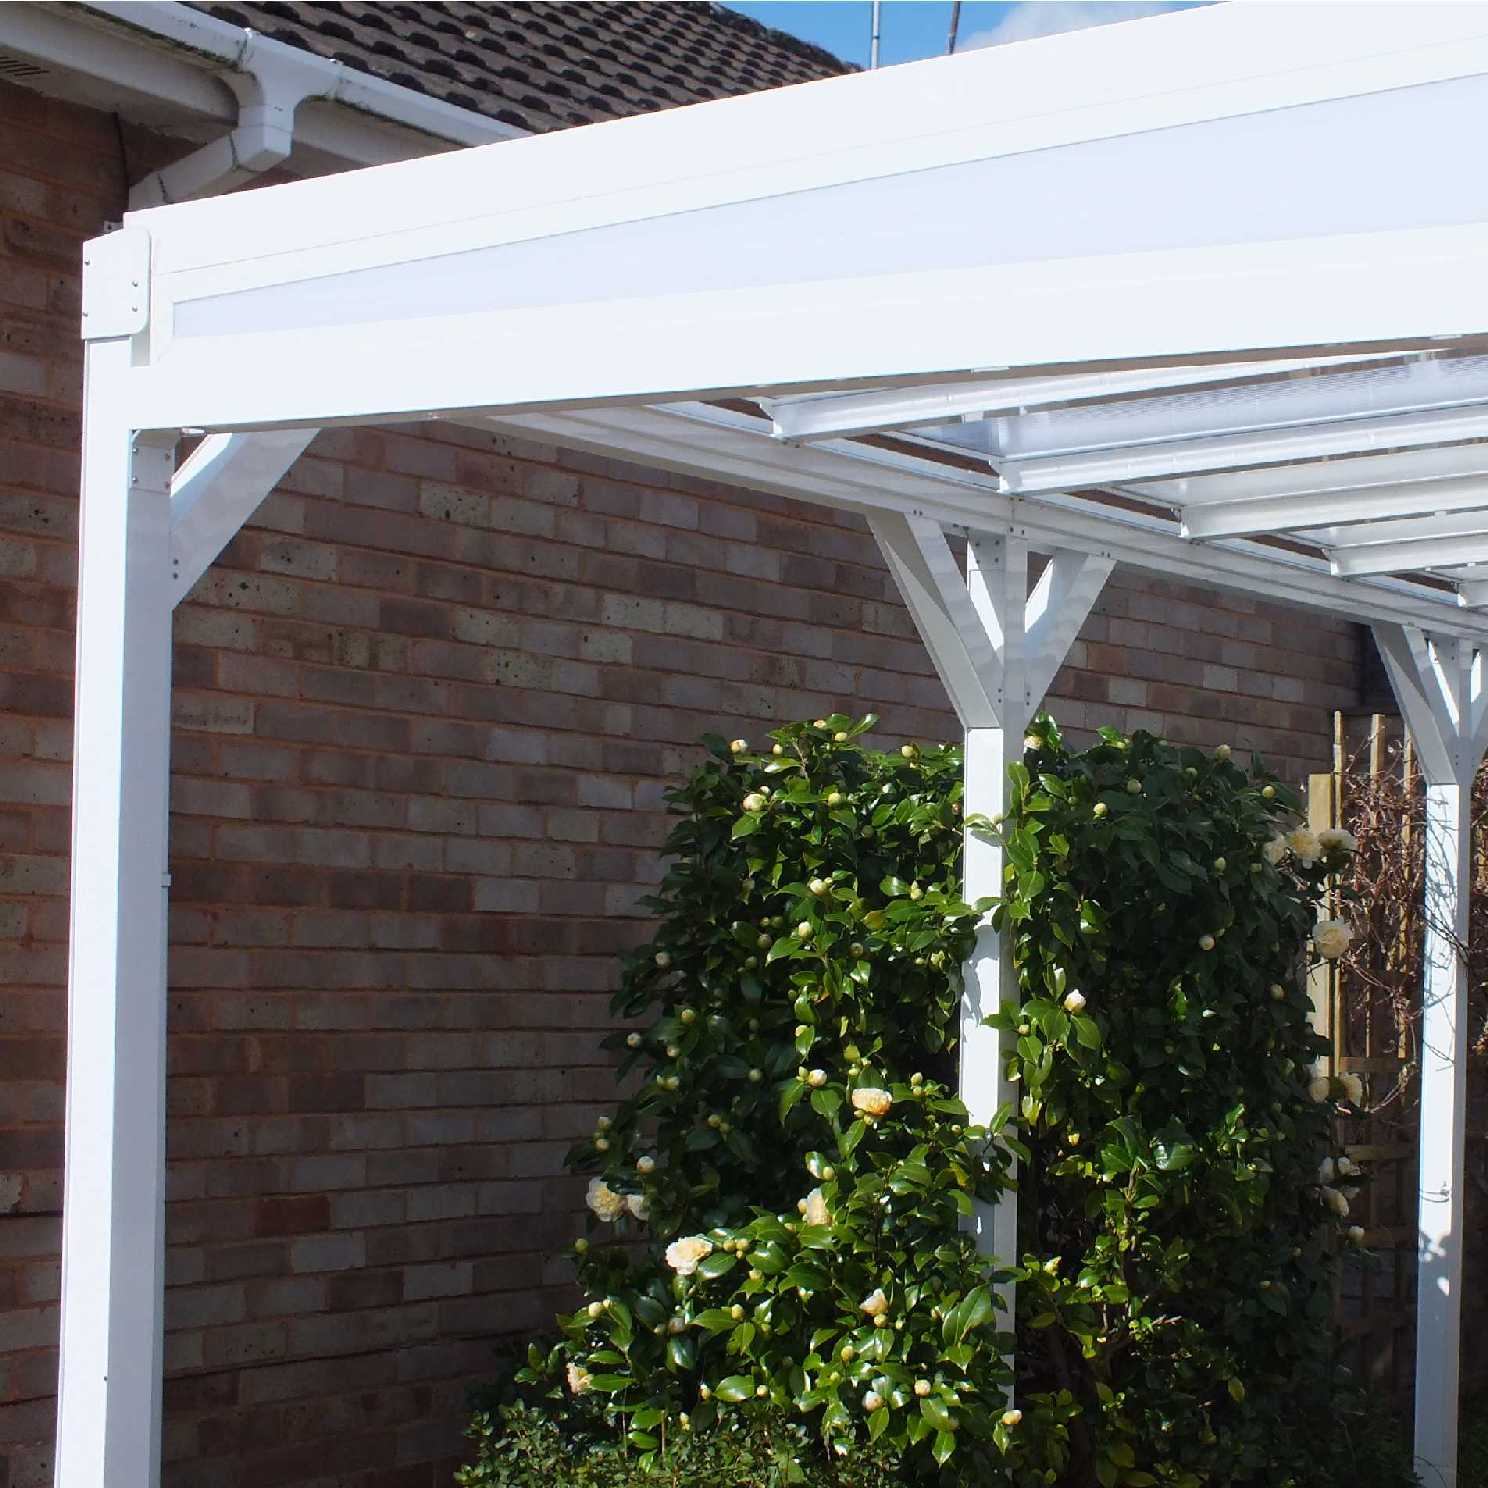 Omega Smart Lean-To Canopy with 16mm Polycarbonate Glazing - 11.6m (W) x 1.5m (P), (5) Supporting Posts from Omega Build